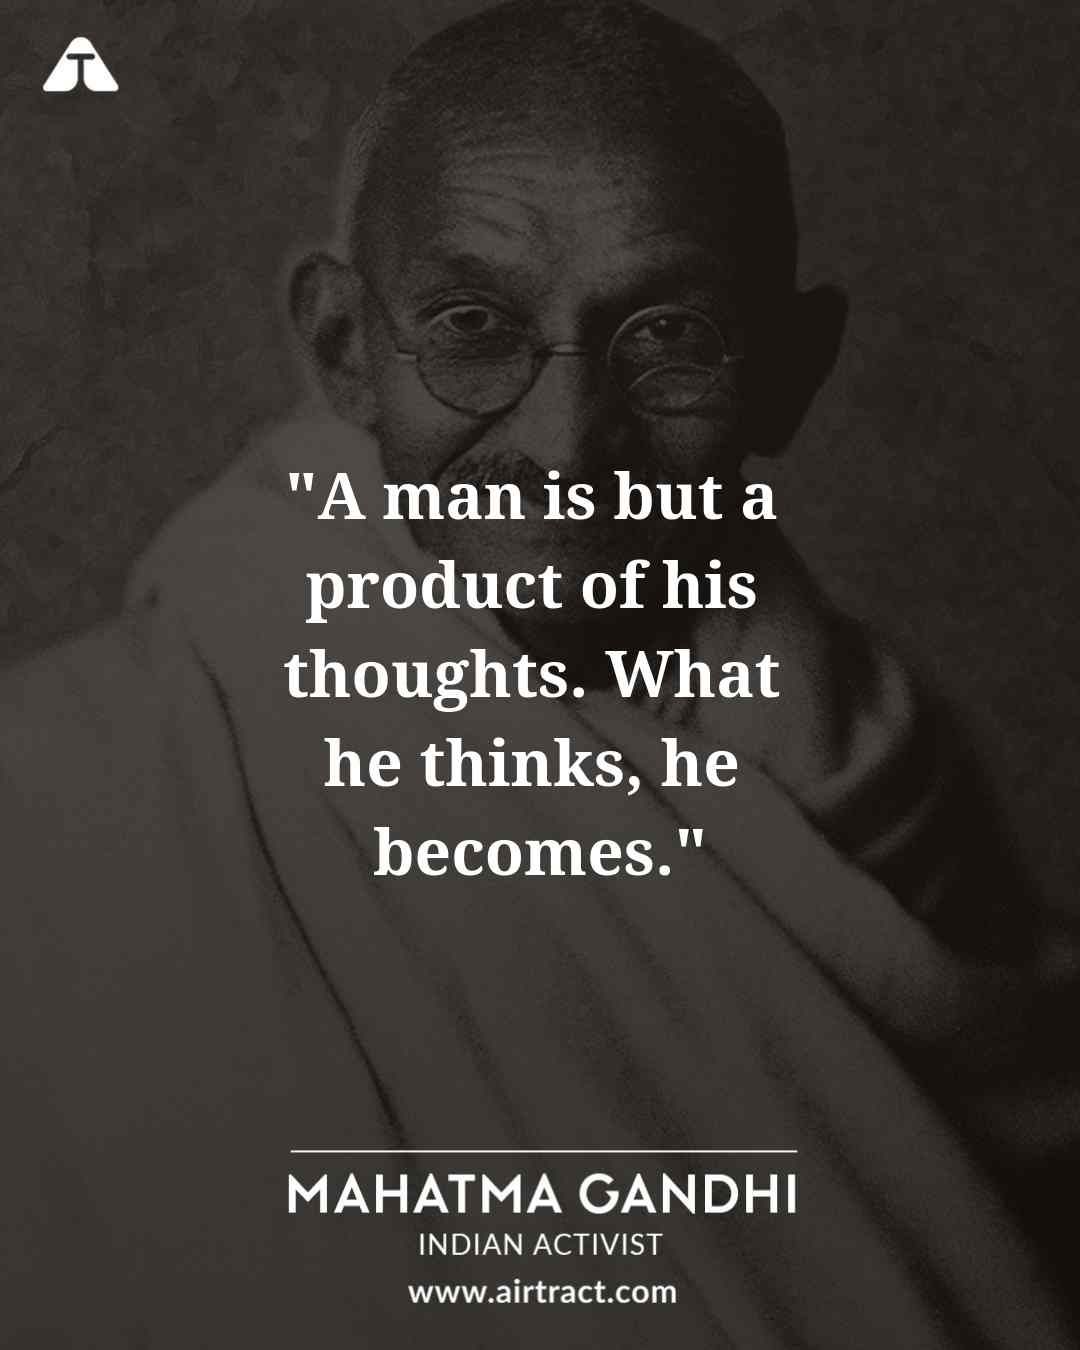 A Man Is But A Product Of His Thoughts What He Thinks He Becomes Mahatma Gandhi Mahatmagandhi Gandhi Quotes Mahatma Gandhi Quotes Gandhi Quotes On Peace